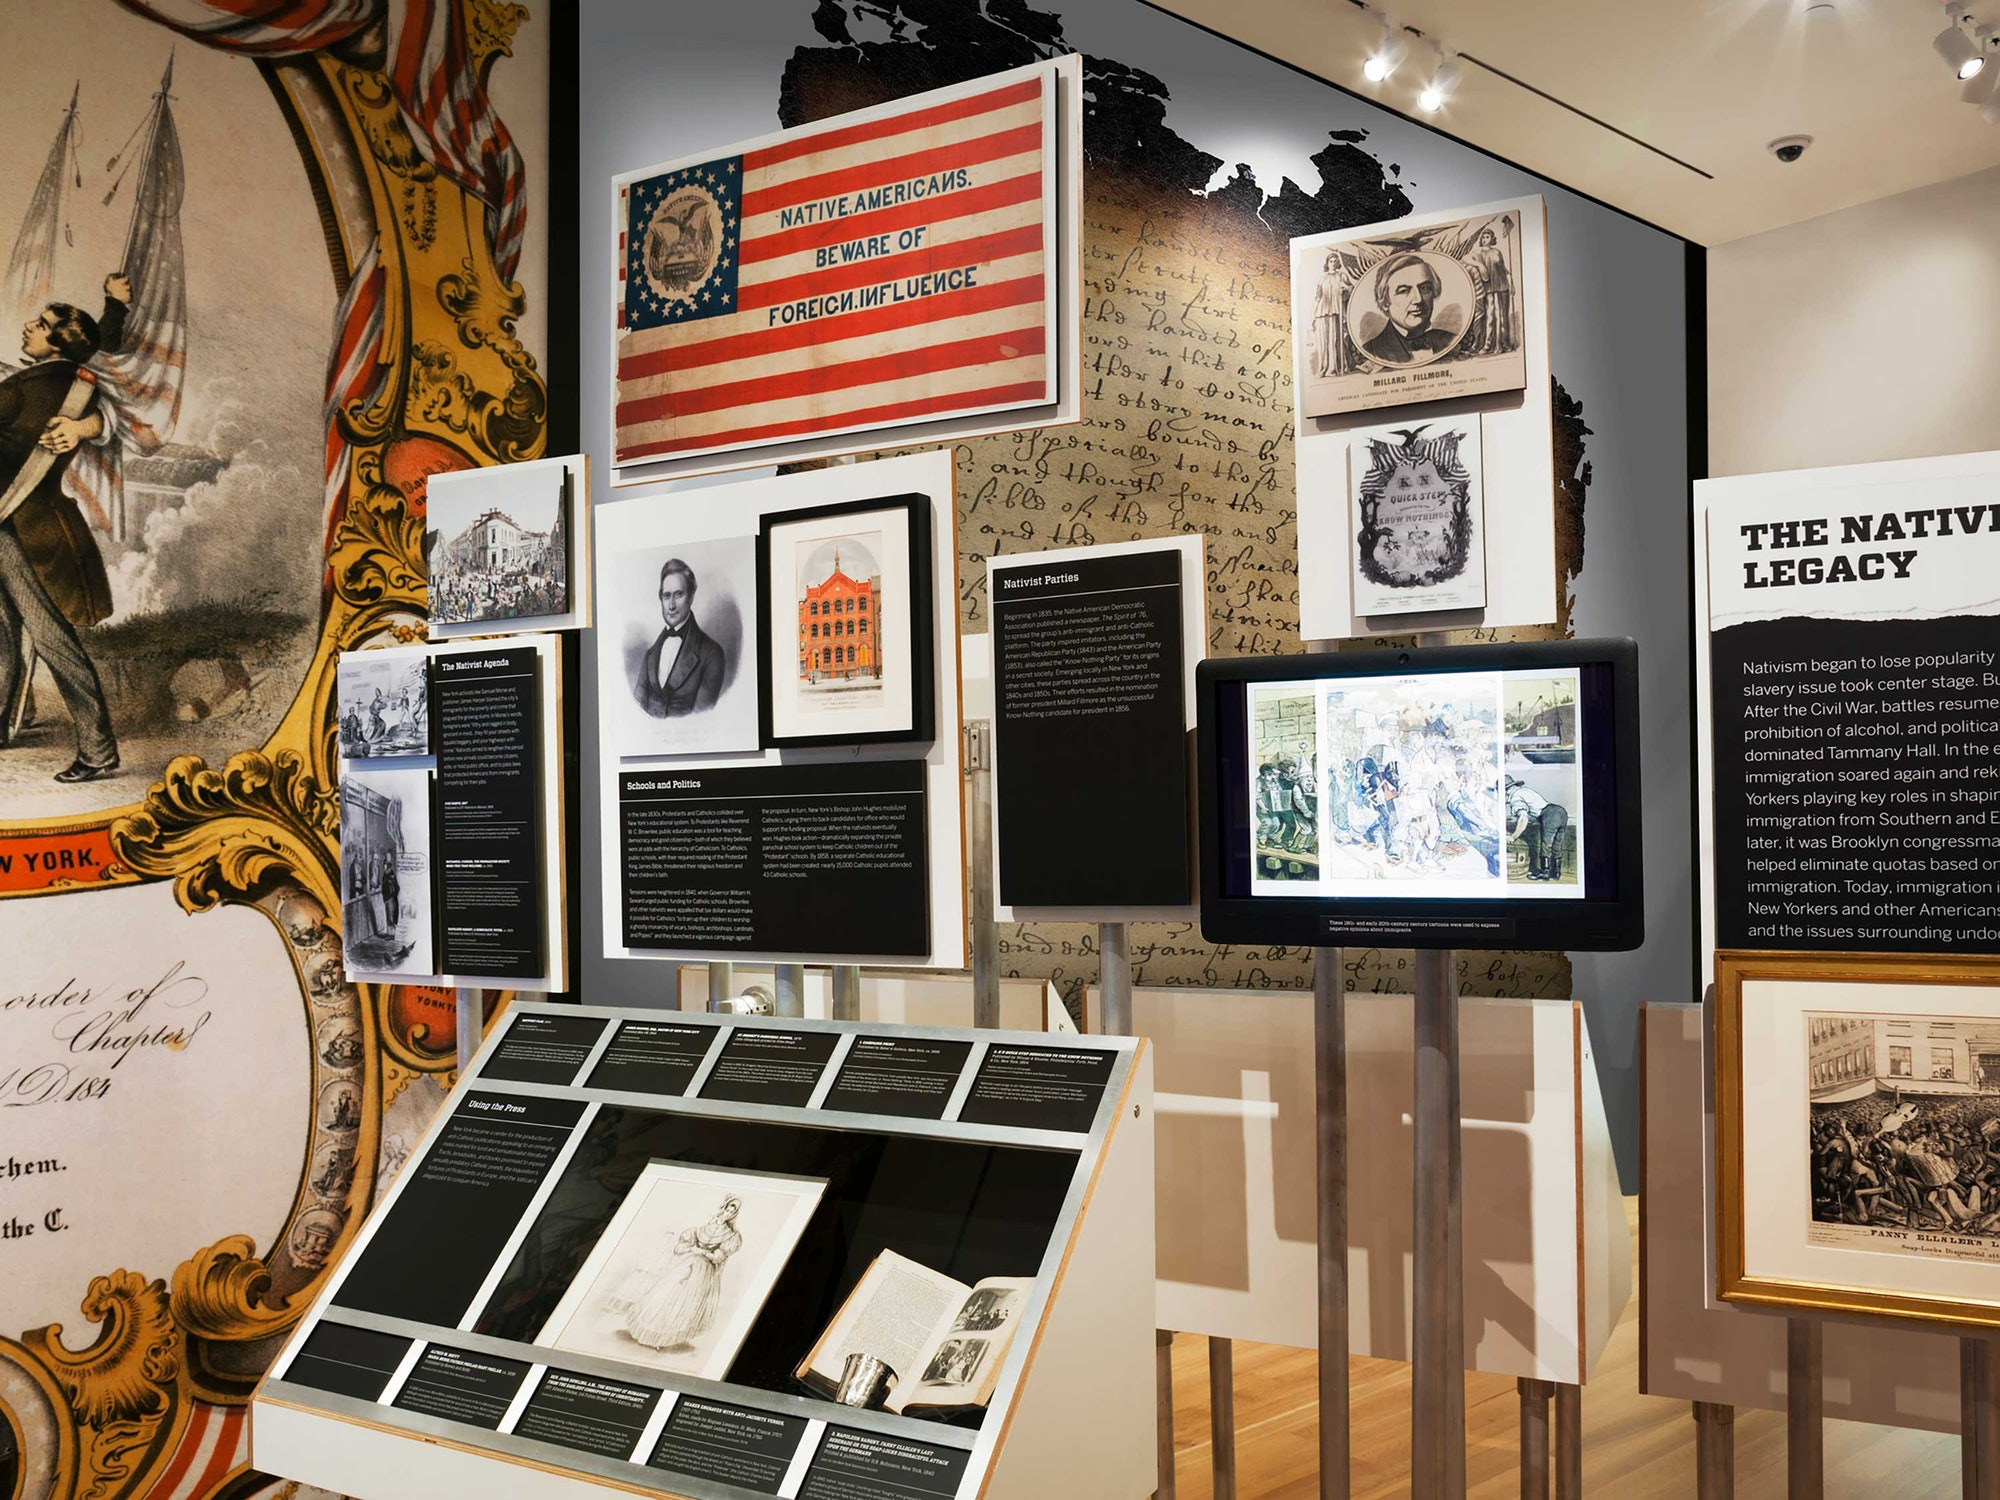 The museum also presents a variety of other temporary and permanent exhibits, such as this one on activism. Image obtained from Pentagram.